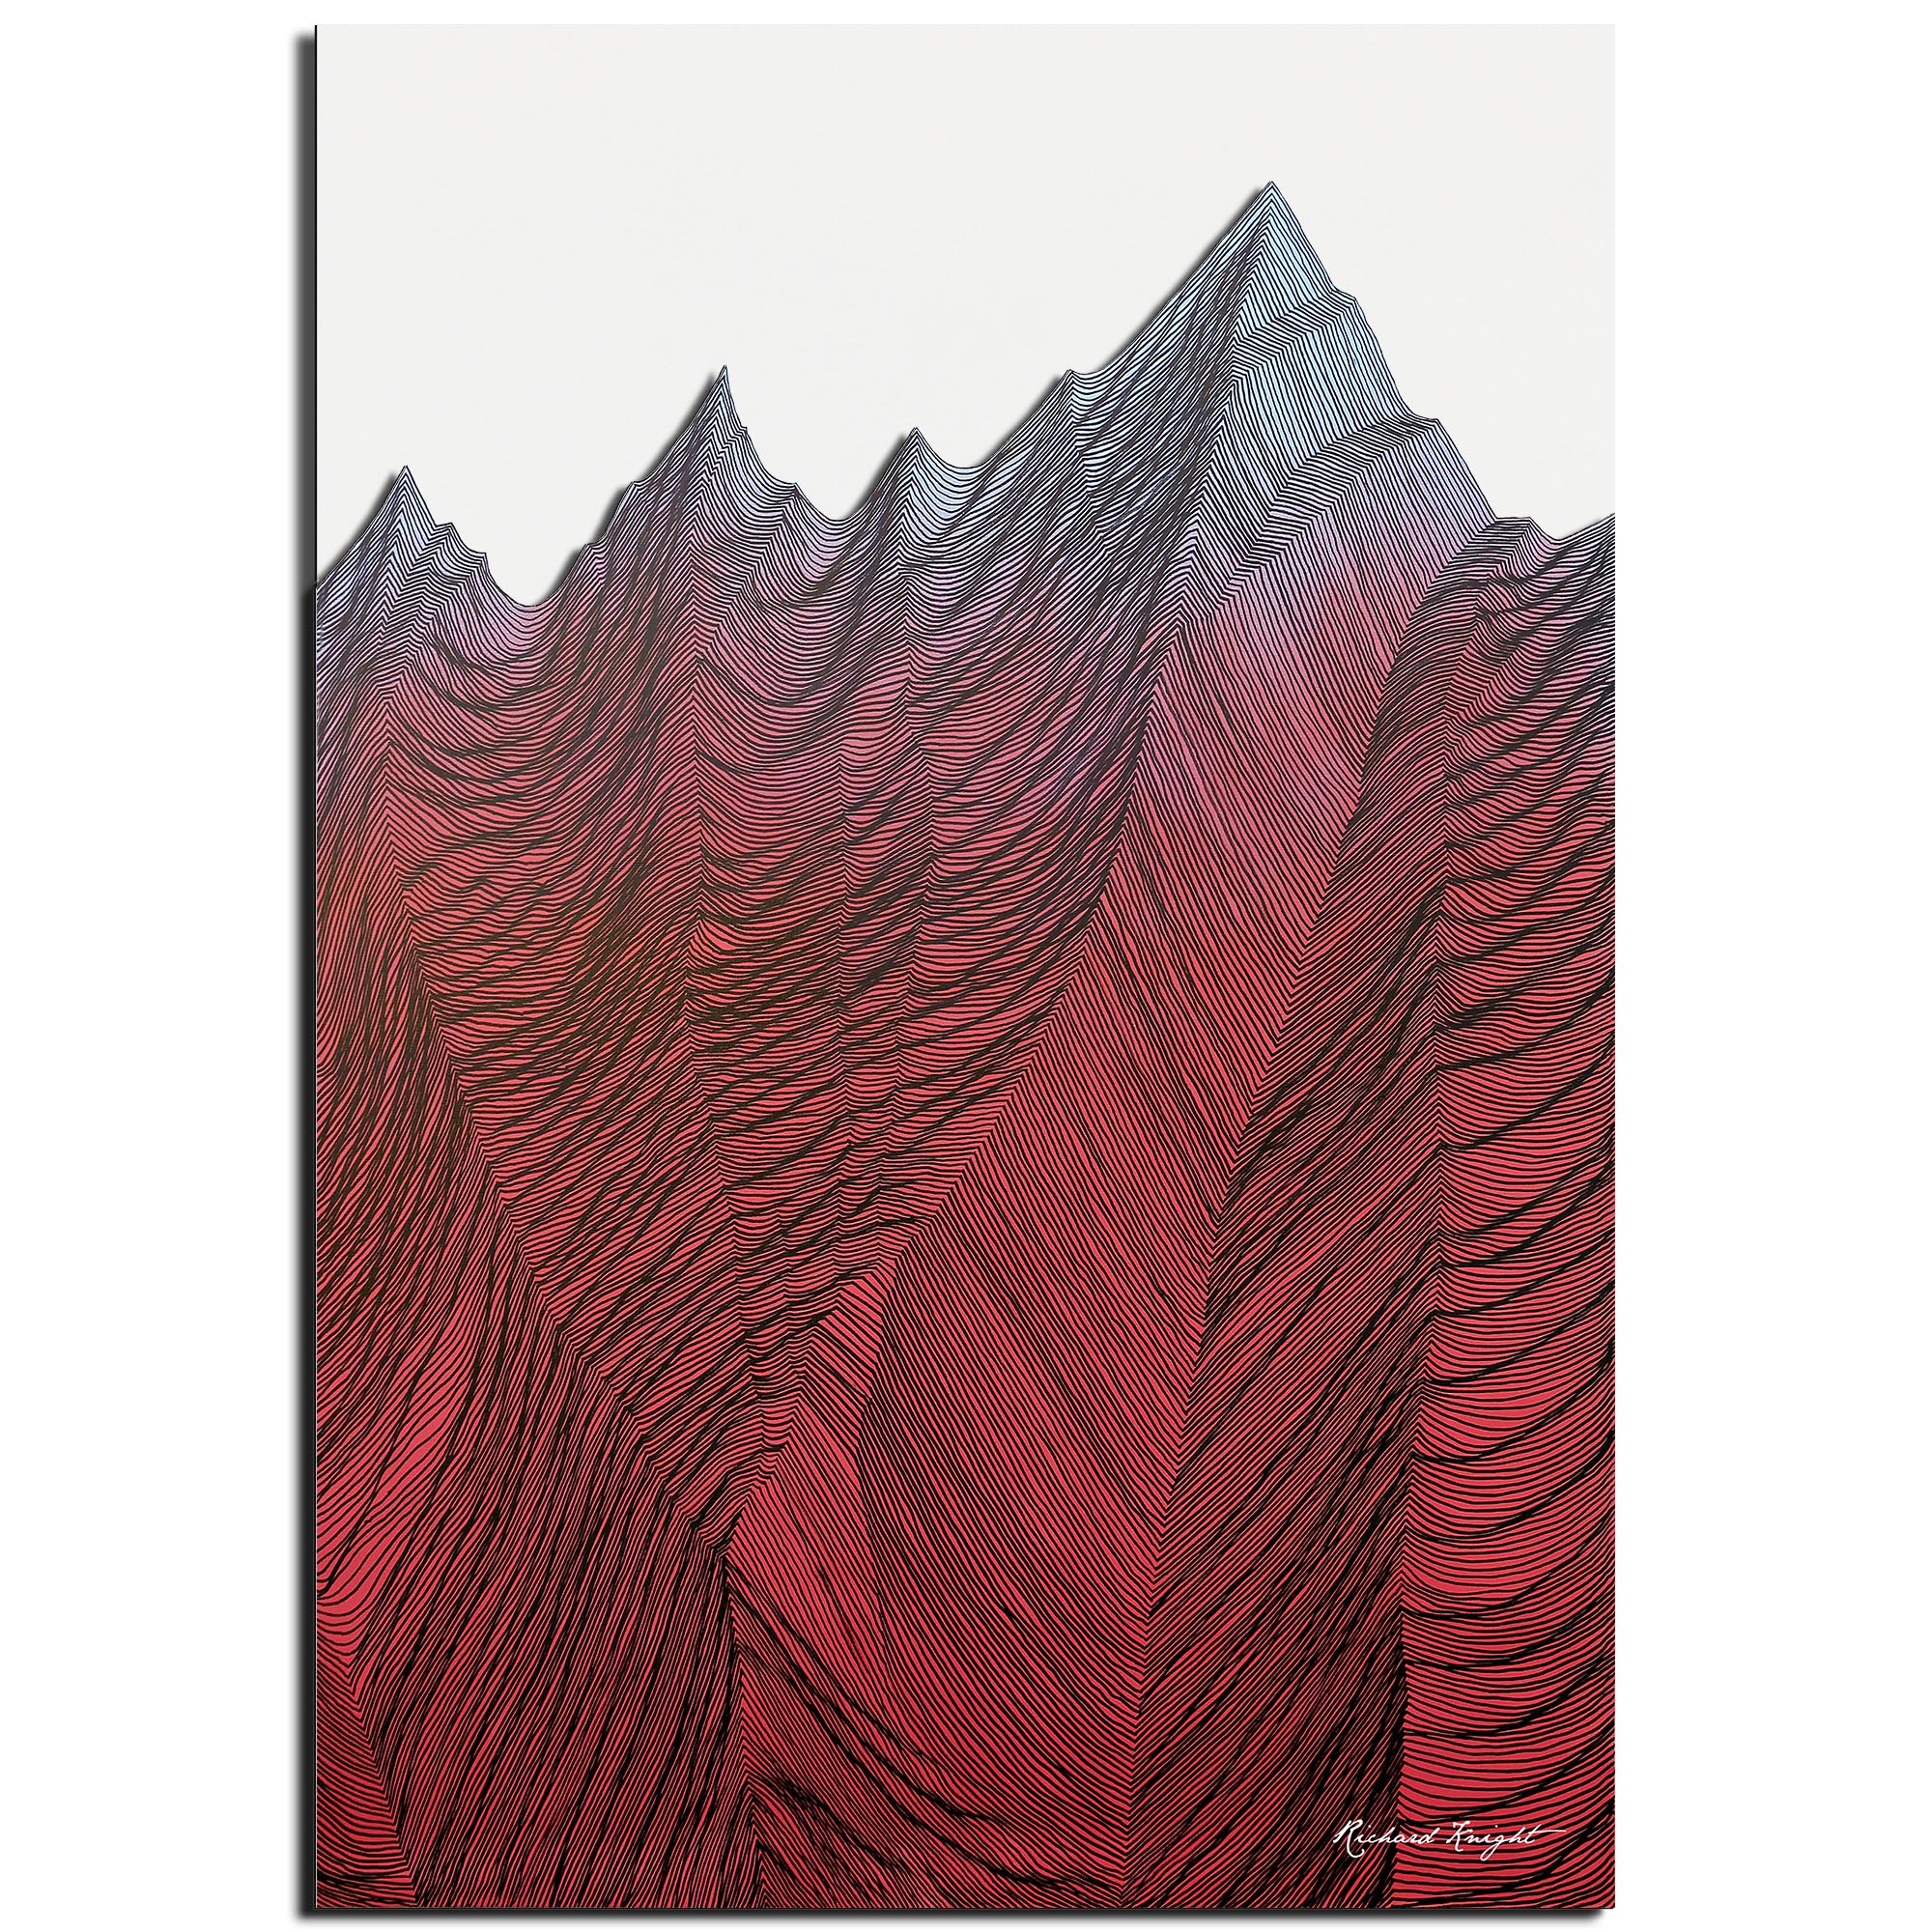 Richard Knight 'Sunset Mountains' 22in x 32in Abstract Landscape Art on Polymetal